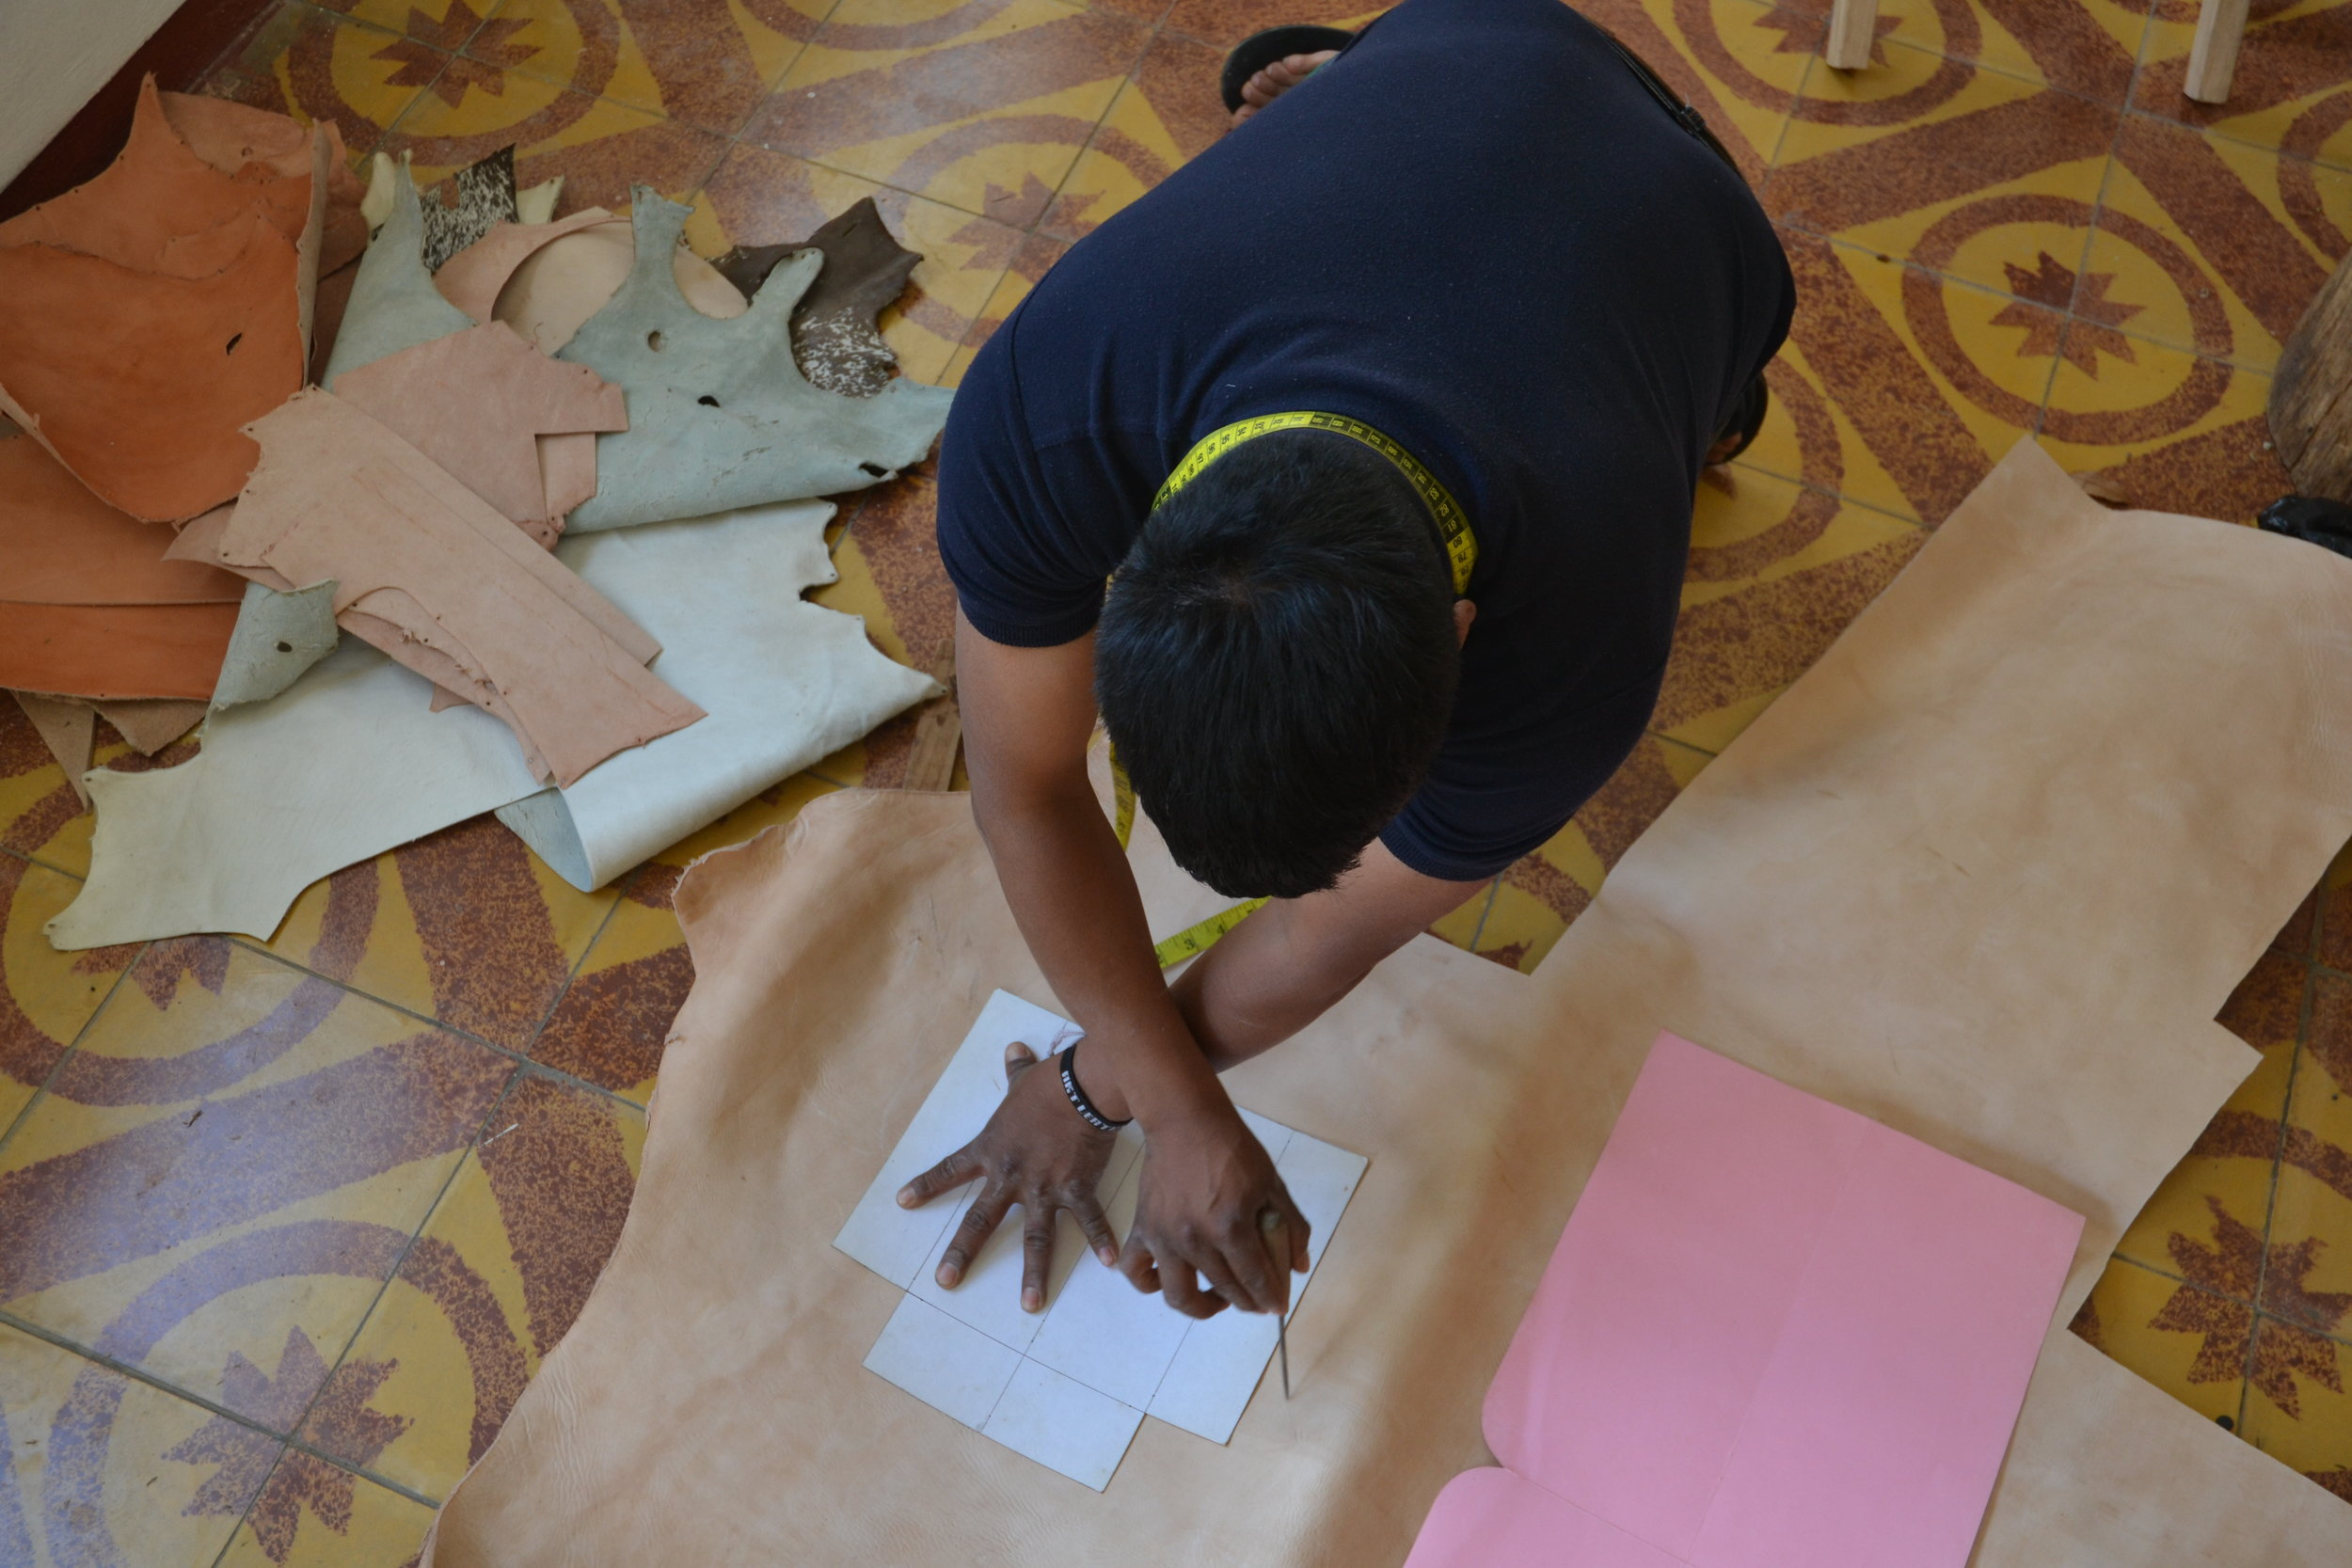 Elias, the leader of the group, working on Maria Maria Studio designs.